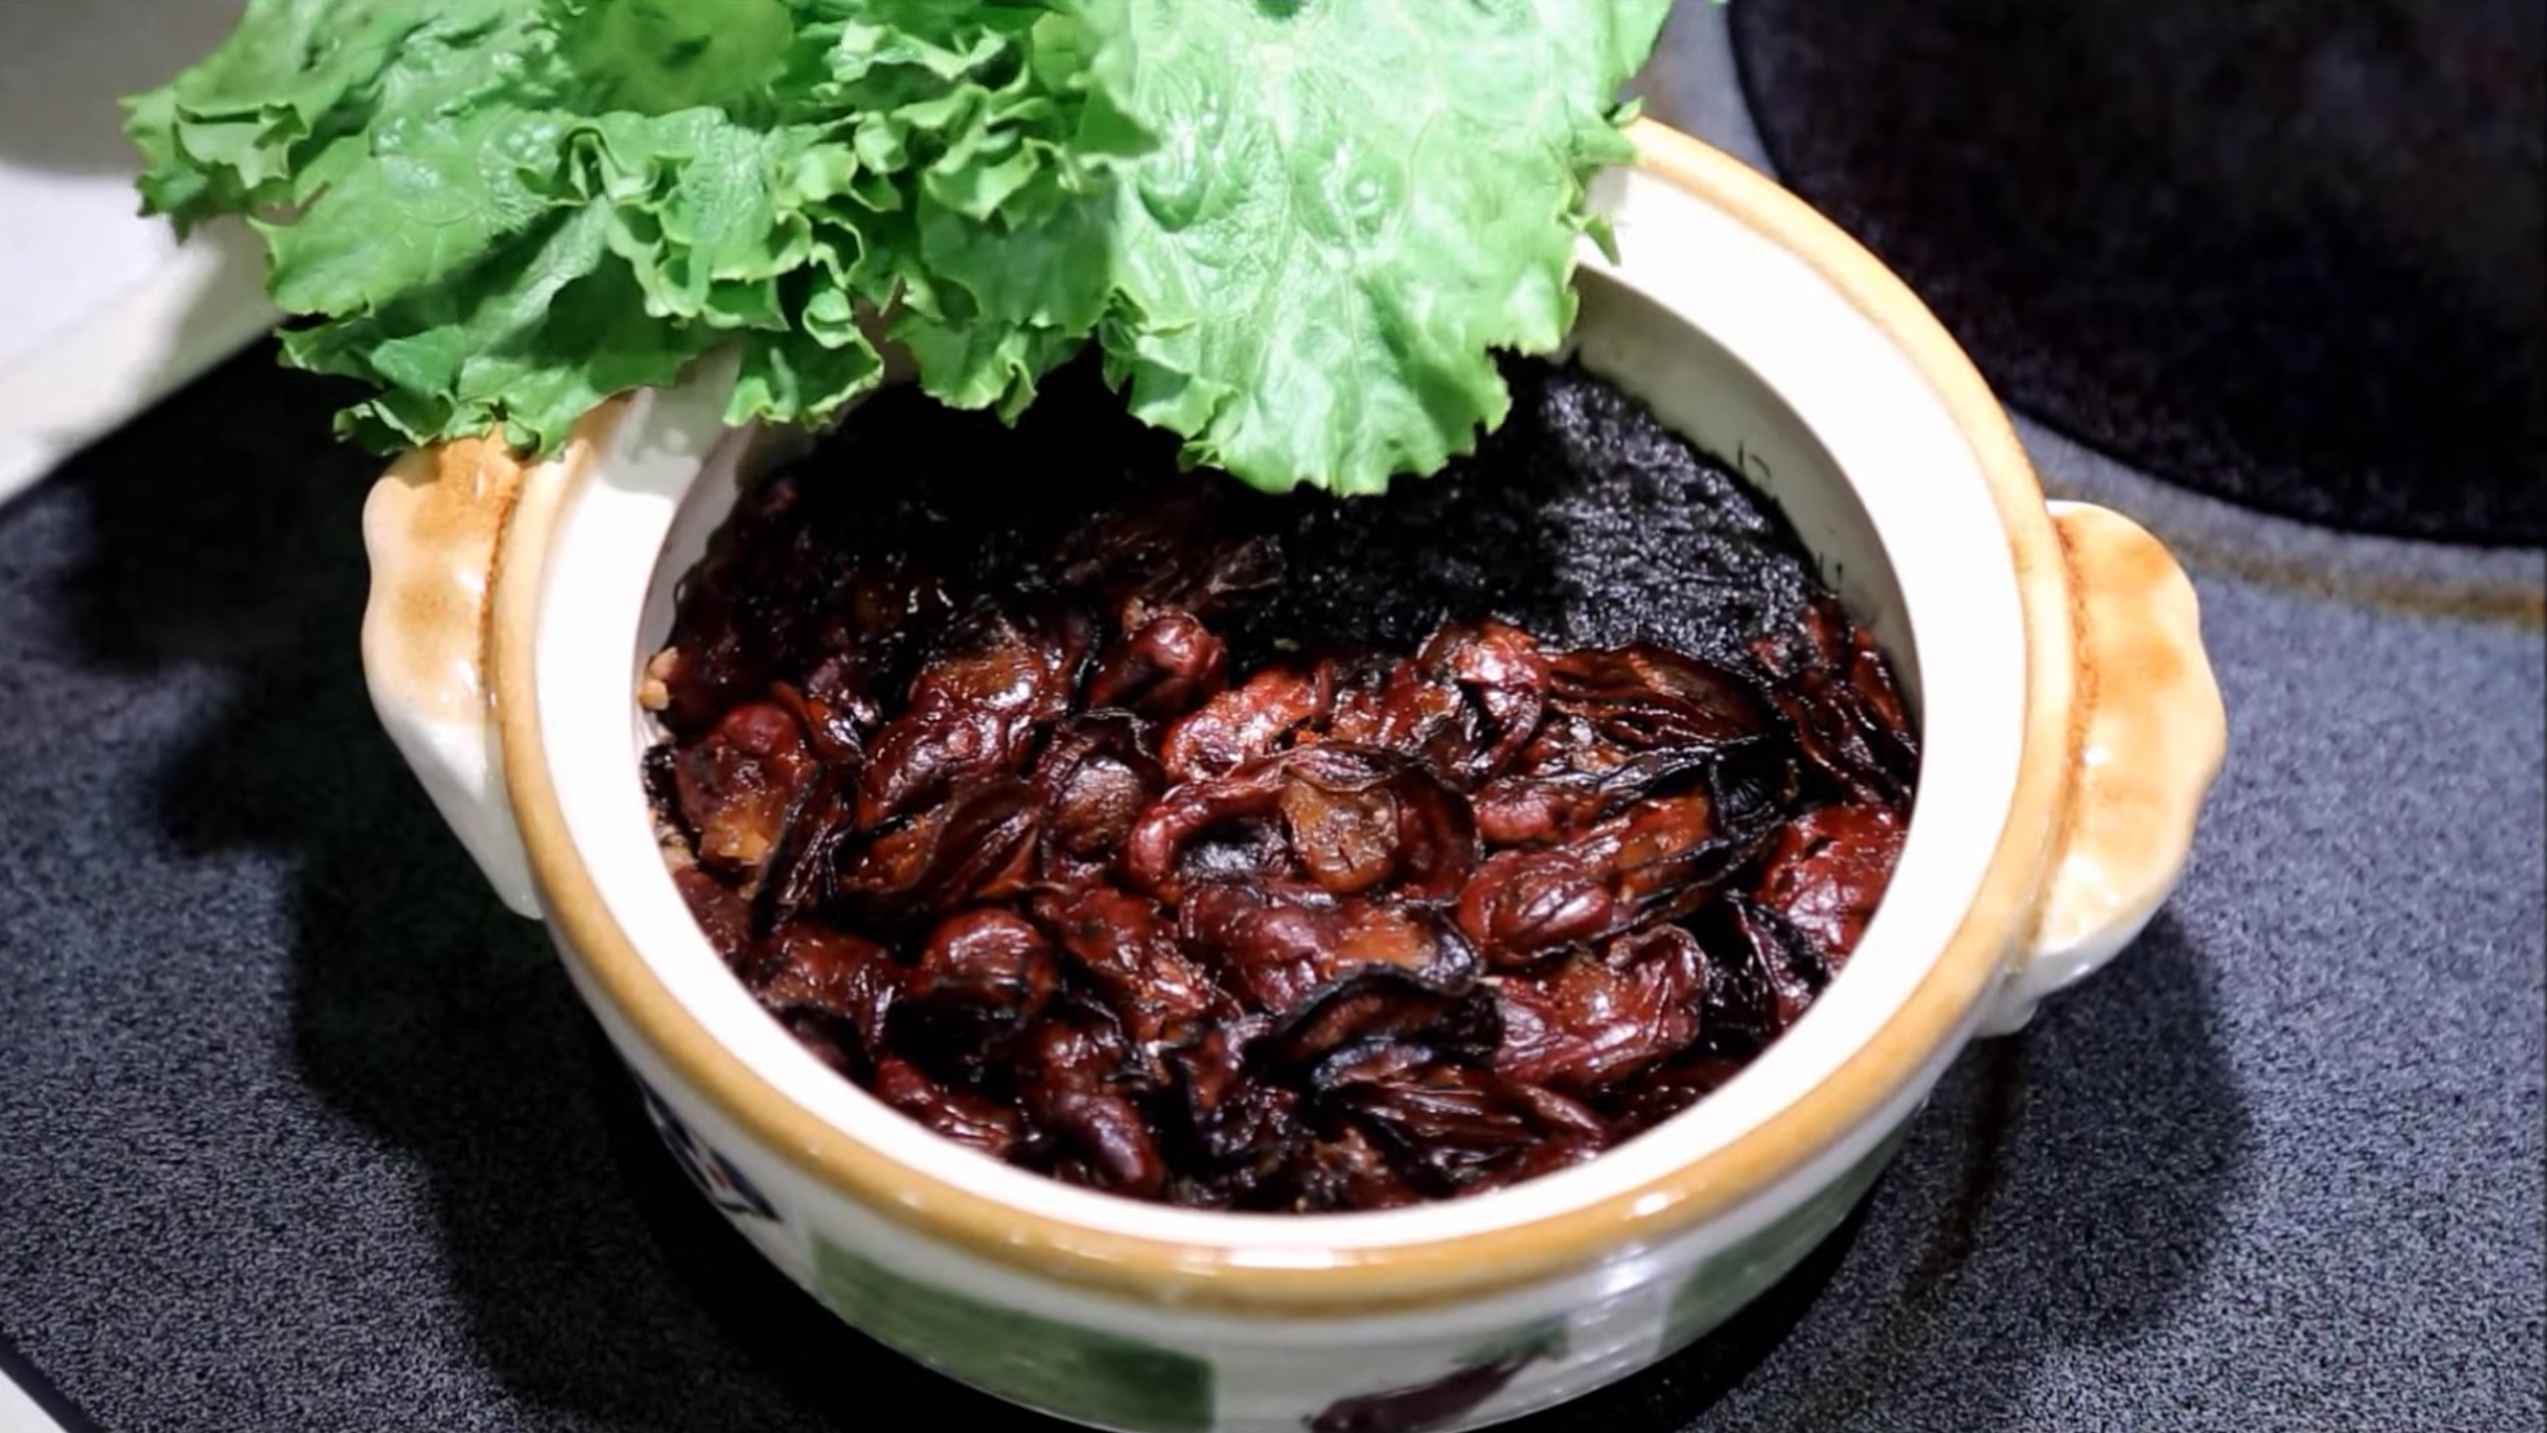 Chinese new year fat choi a lucky food the cantonese seek in black for the cantonese lunar new year means scouring the black market for an auspicious delicious bacteria m4hsunfo